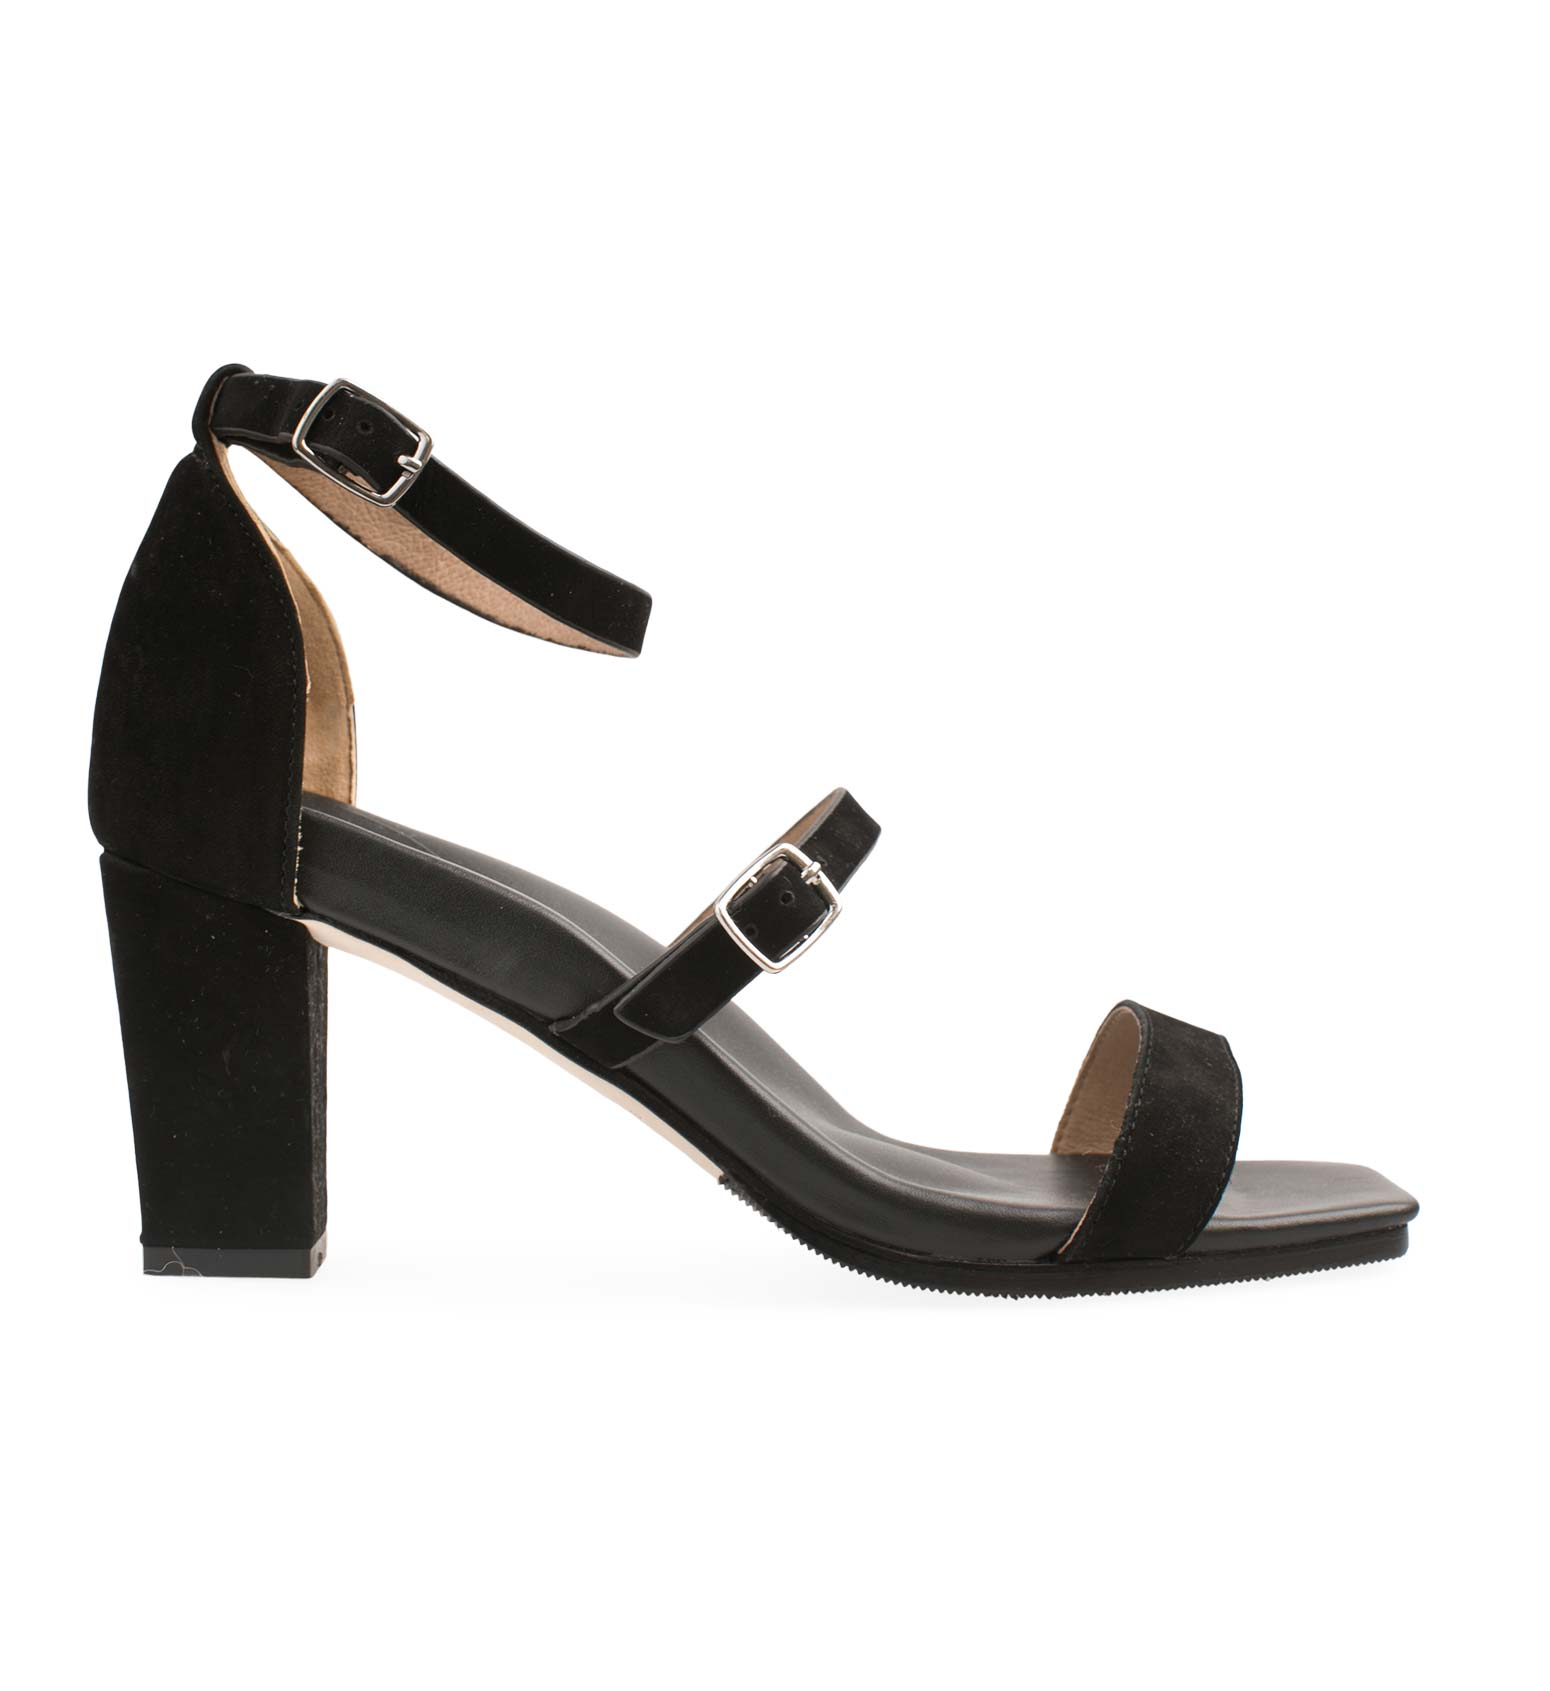 8696ab17096 Bared Shoes: A revolution in footwear. Men's and women's shoes ...